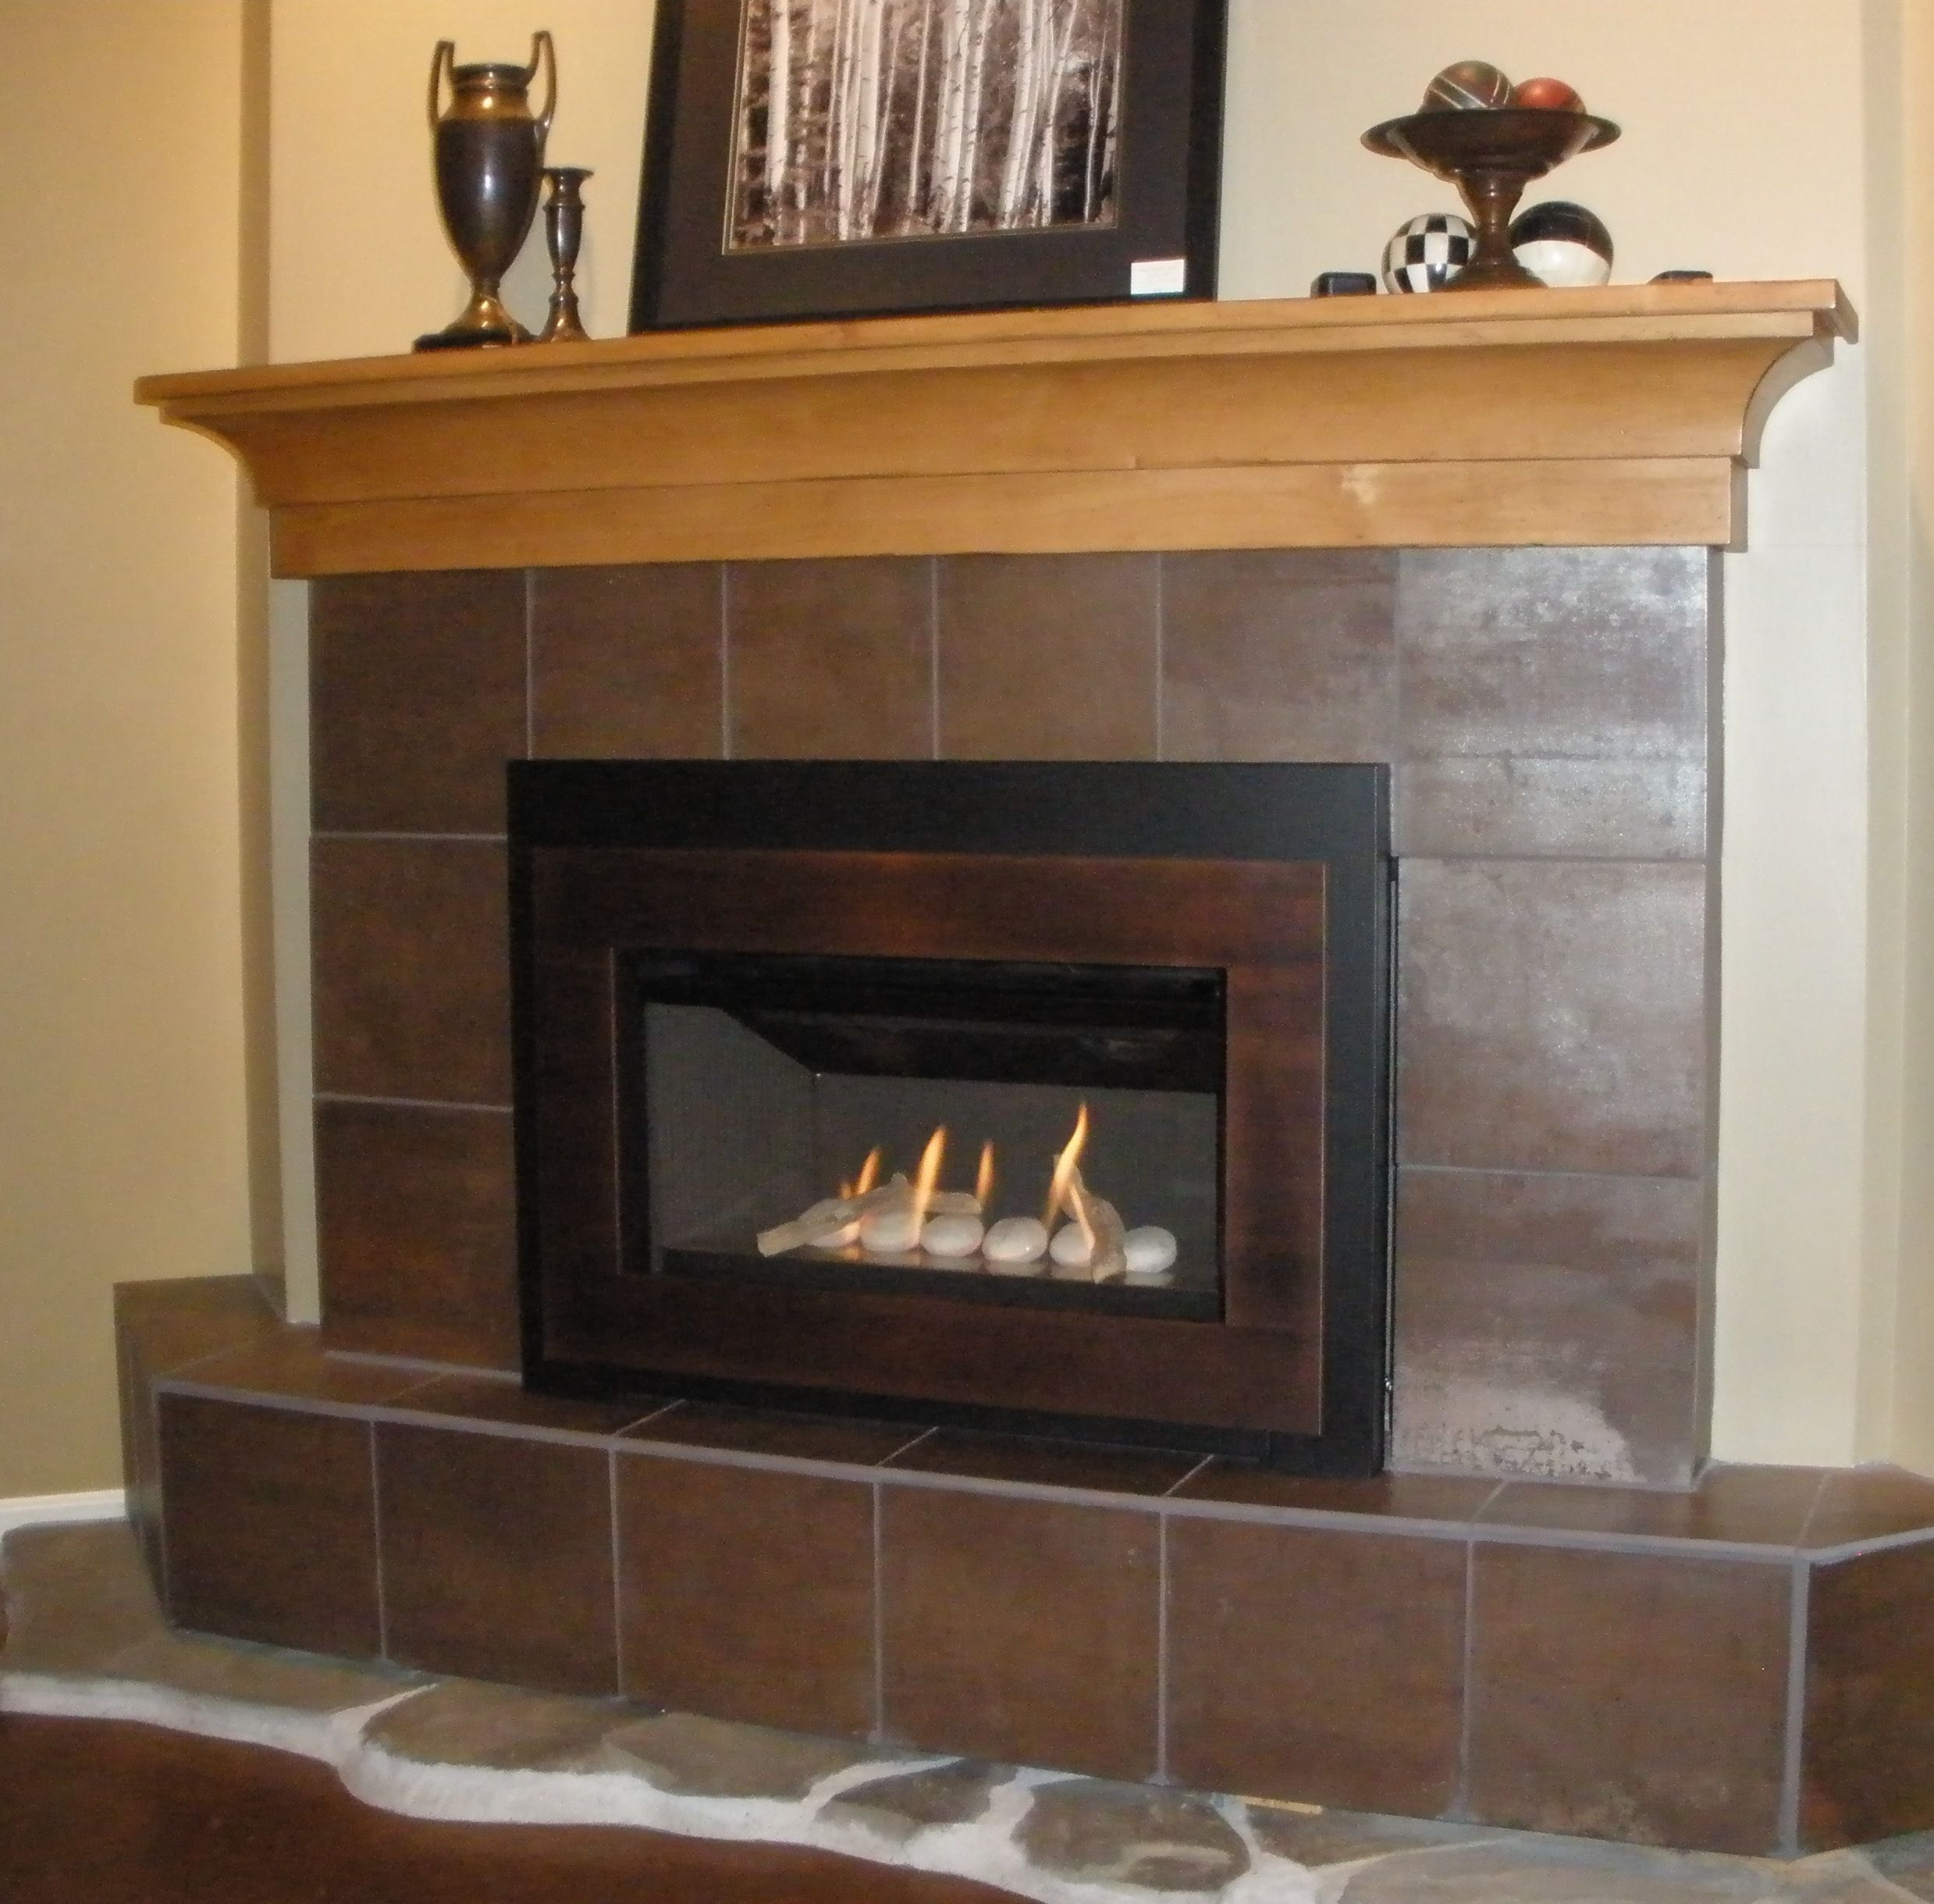 Wood and Gas Fireplace New Pin On Valor Radiant Gas Fireplaces Midwest Dealer